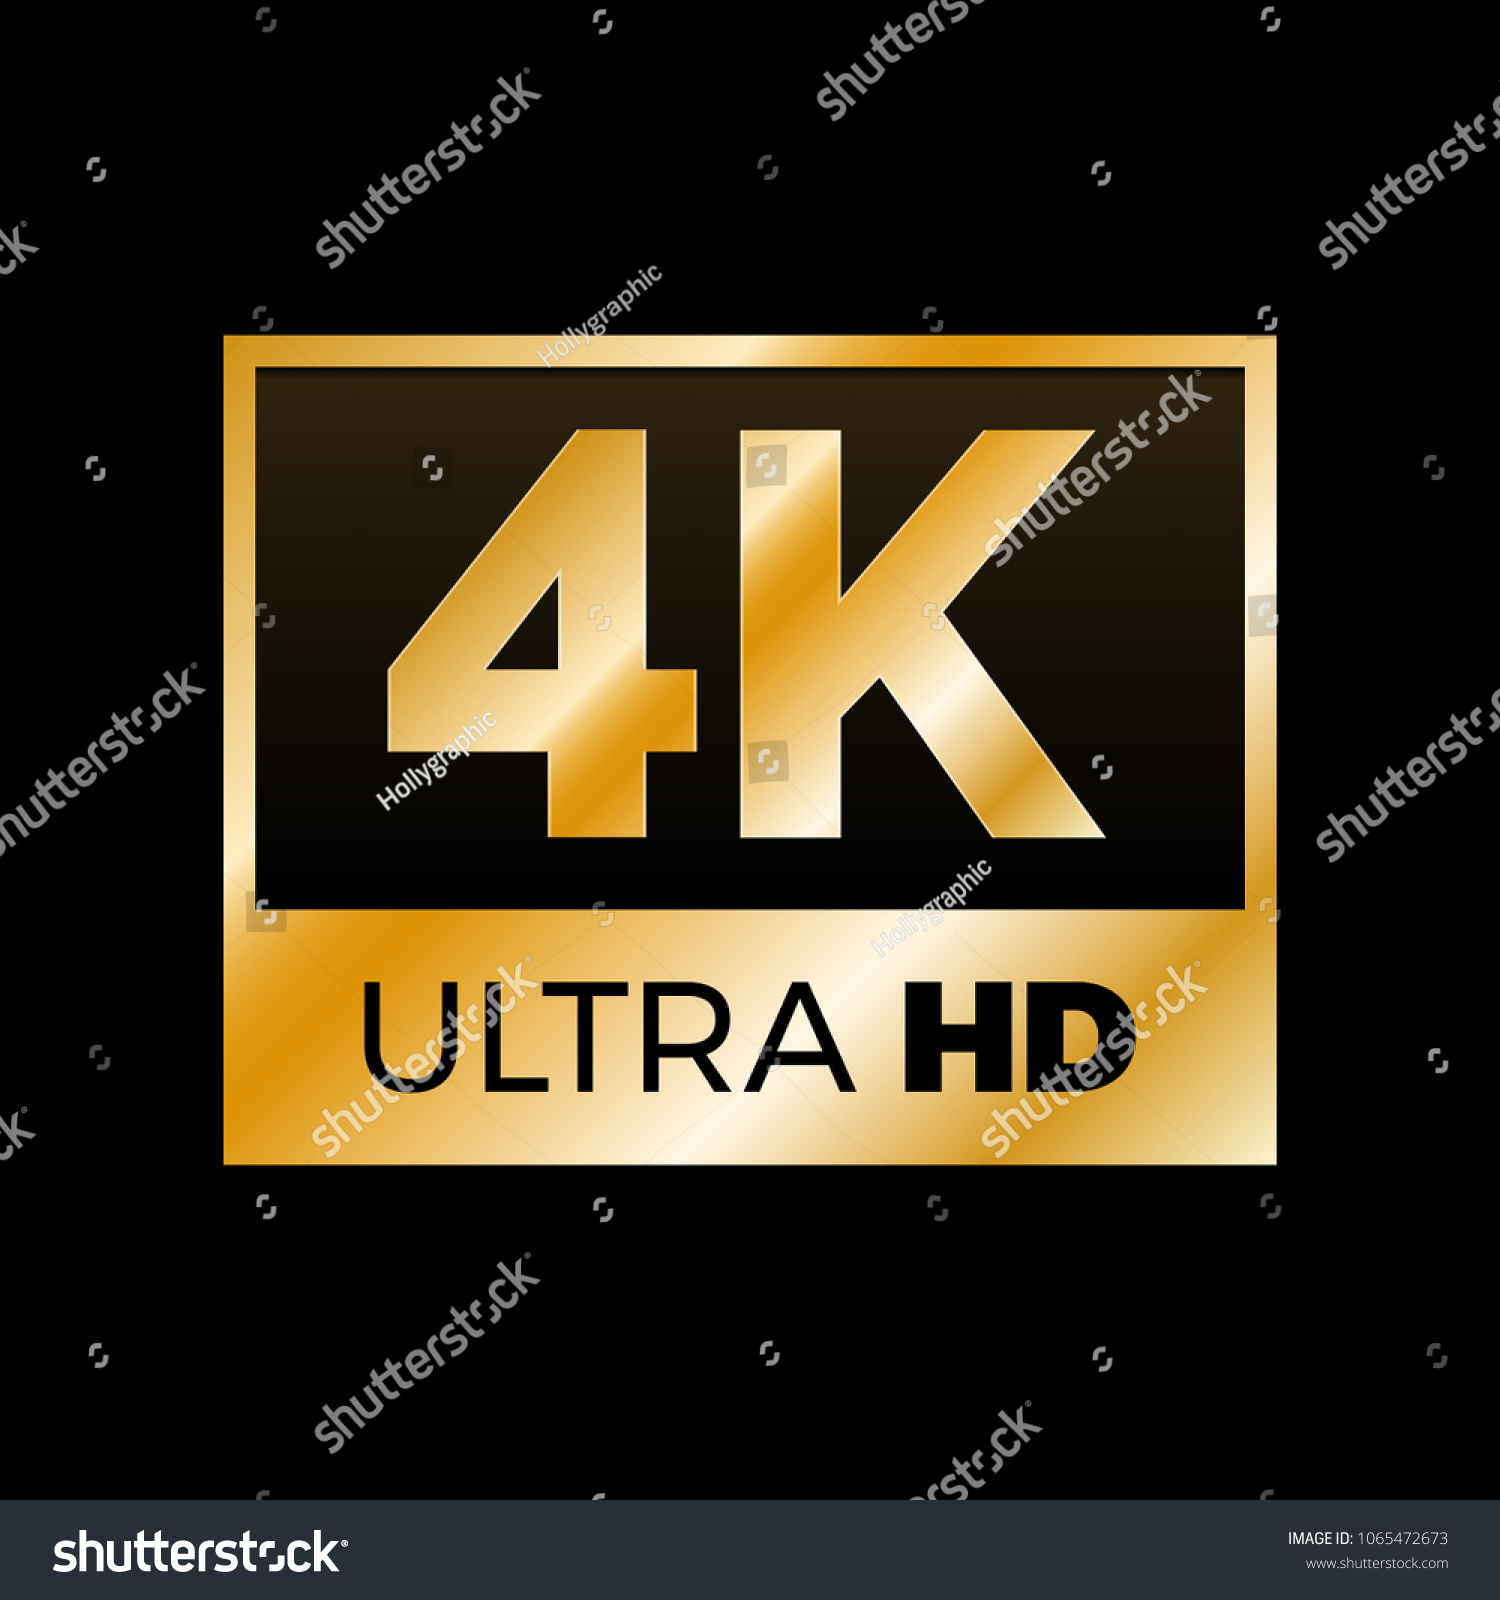 4 k ultra hd symbol high definition stock vector (royalty free